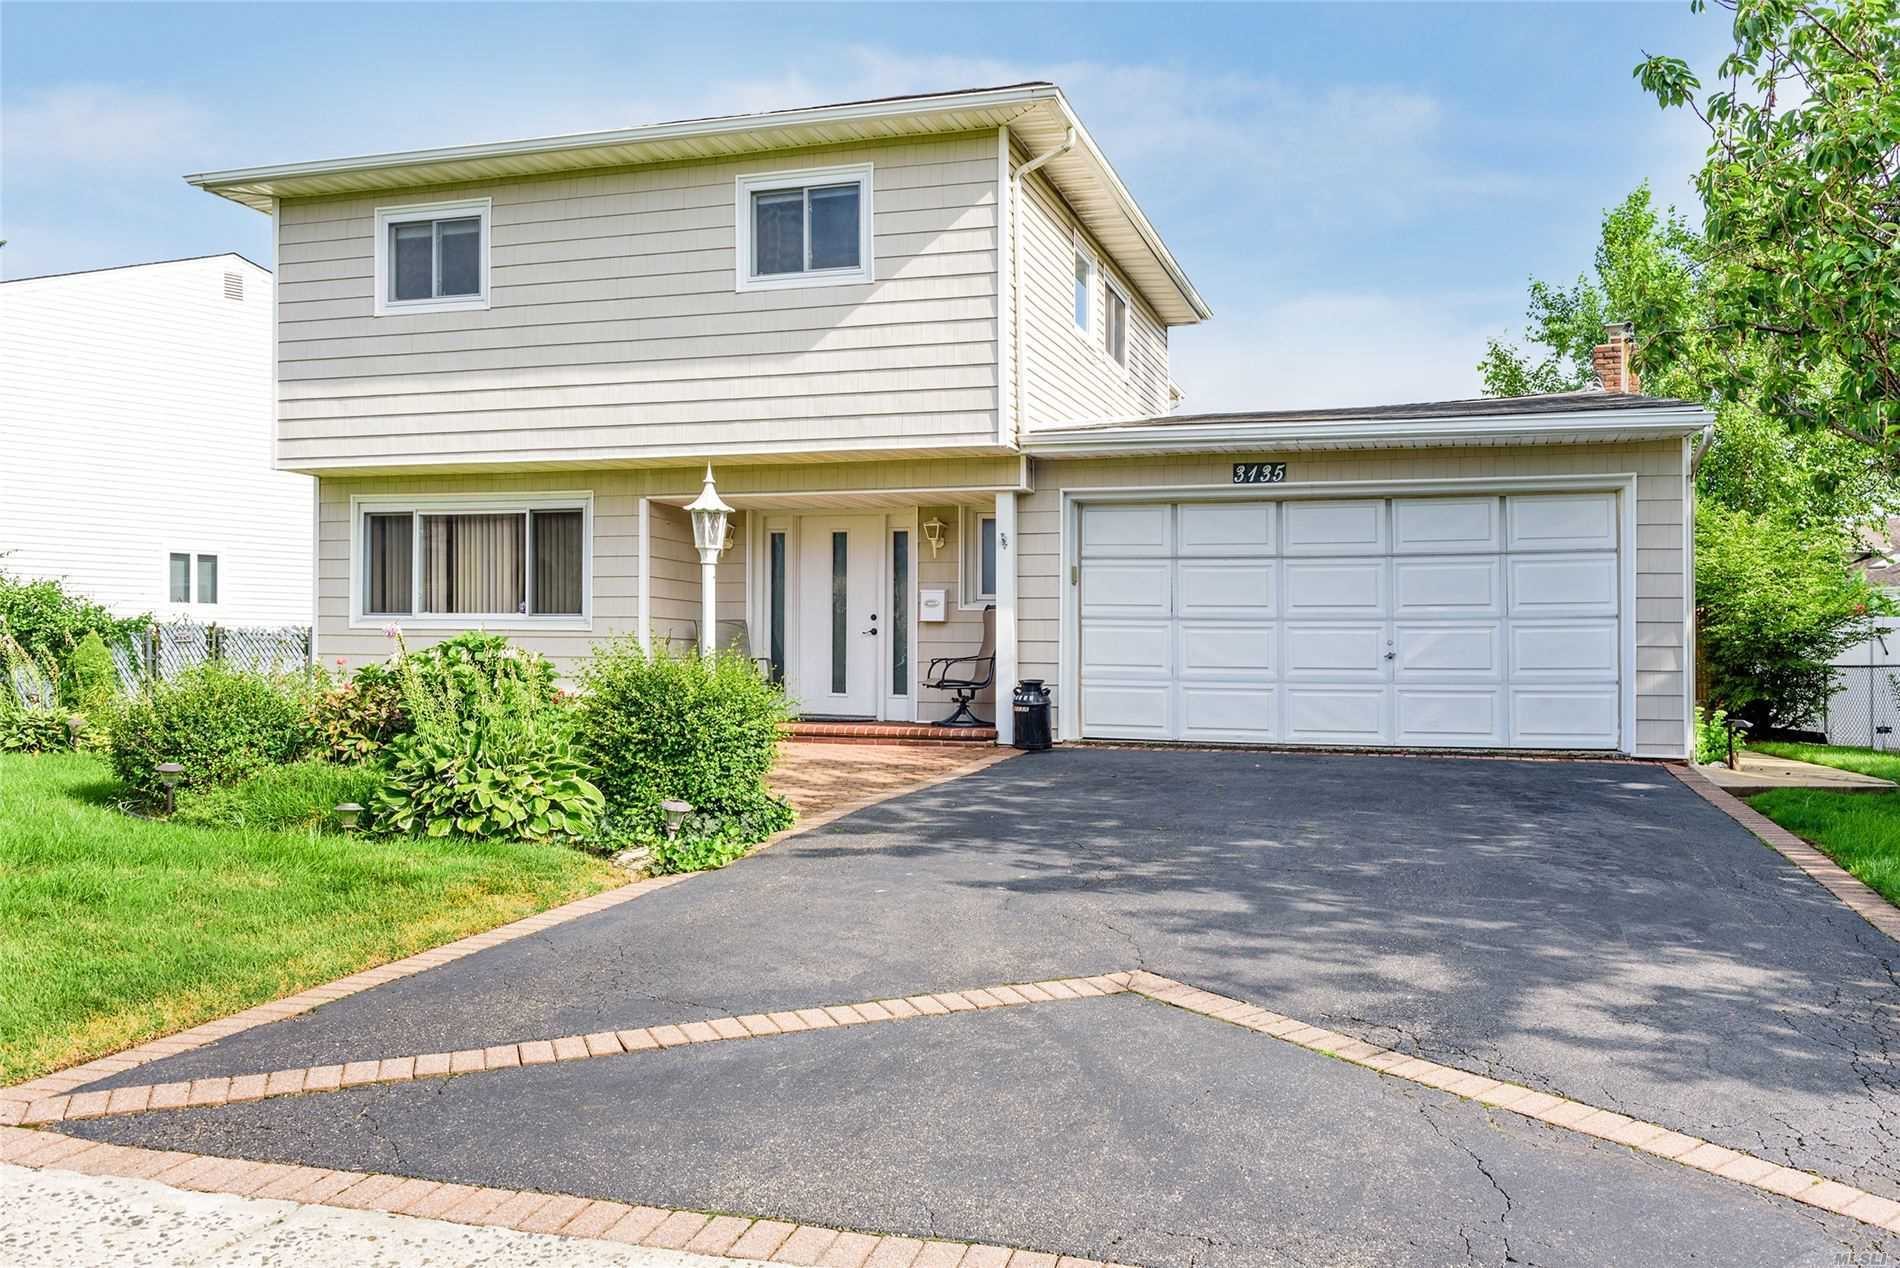 3135 Shore Rd - Bellmore, New York